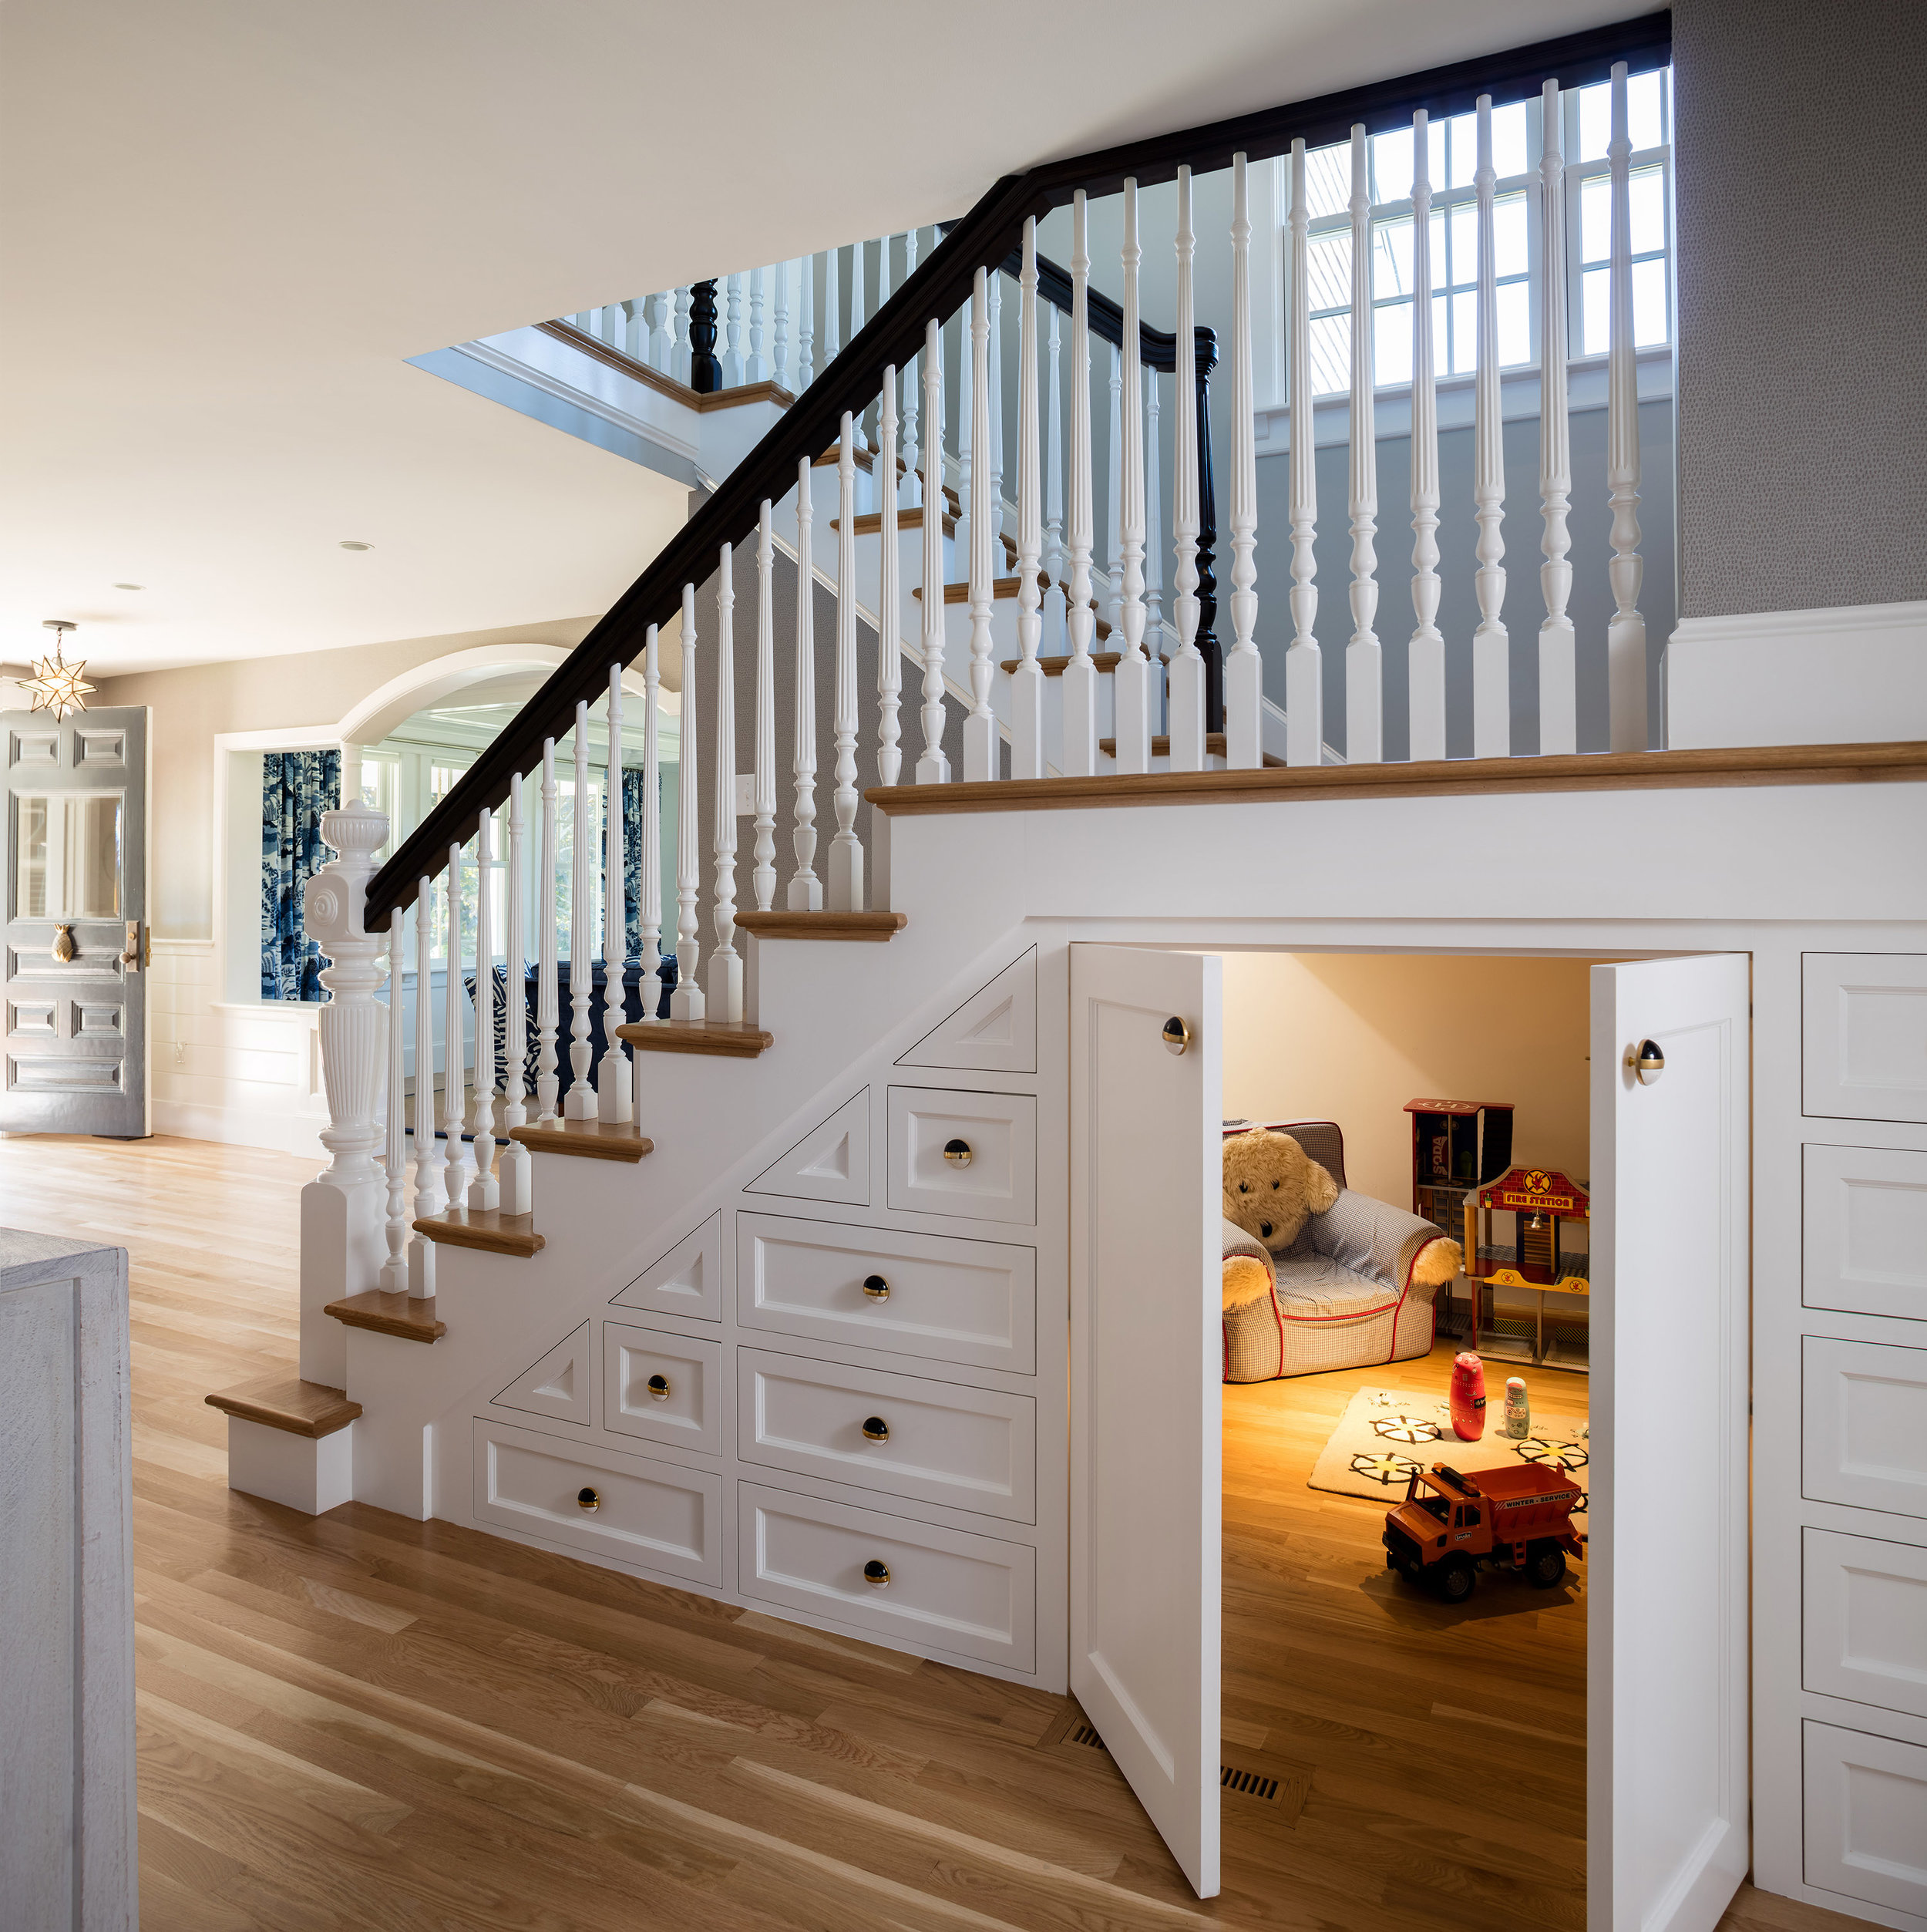 Stairwell/Play Room